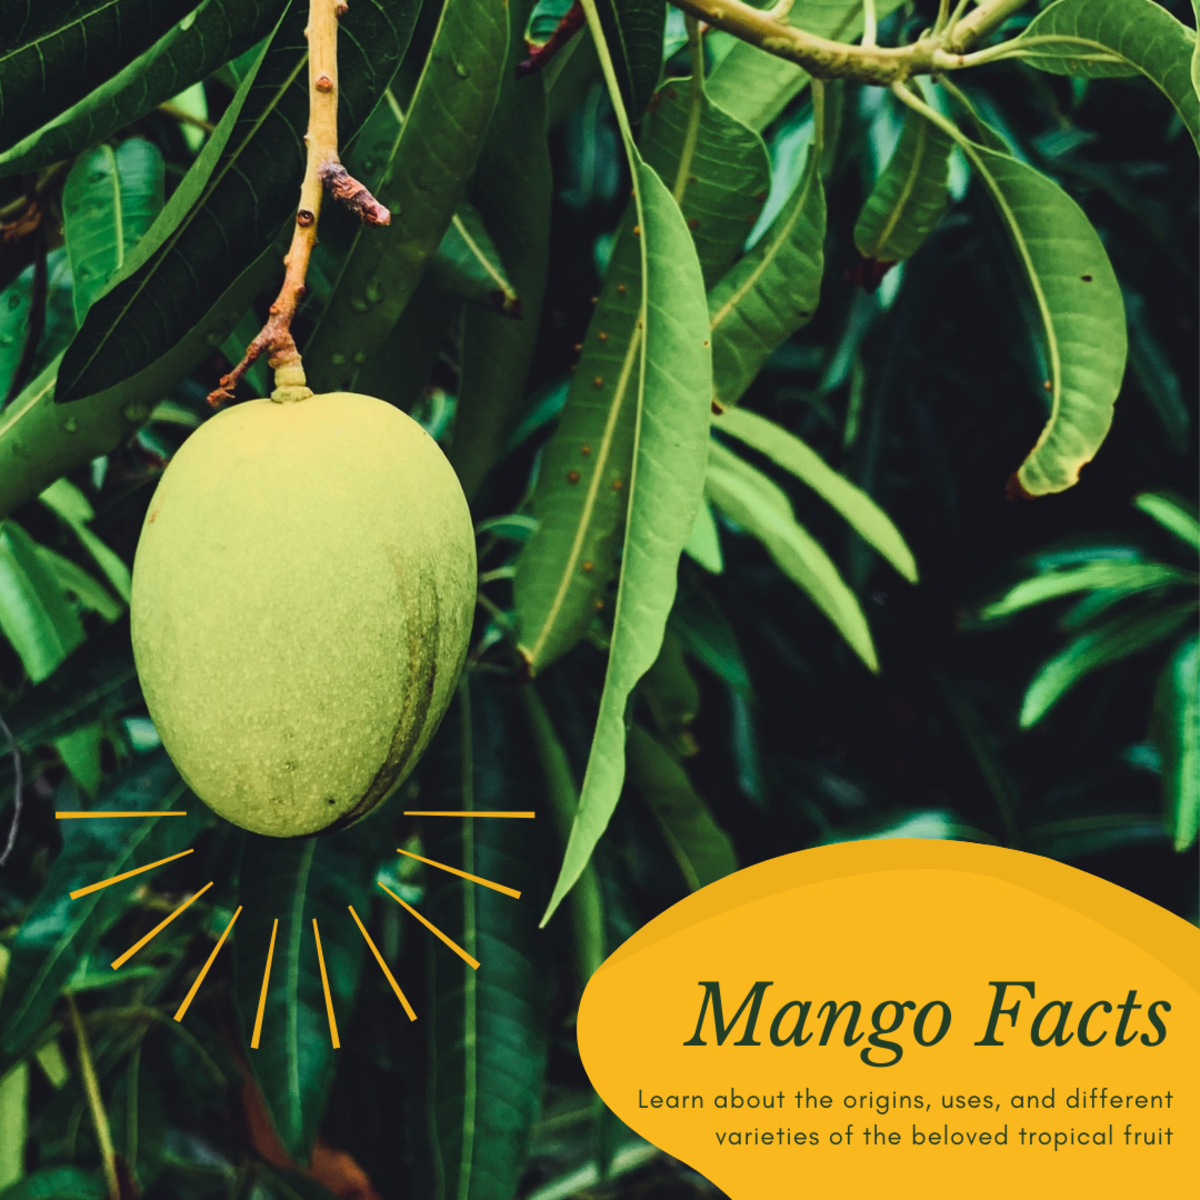 This article will provide a wealth of information about where mangoes came from, what they can look like, and how they can be used.